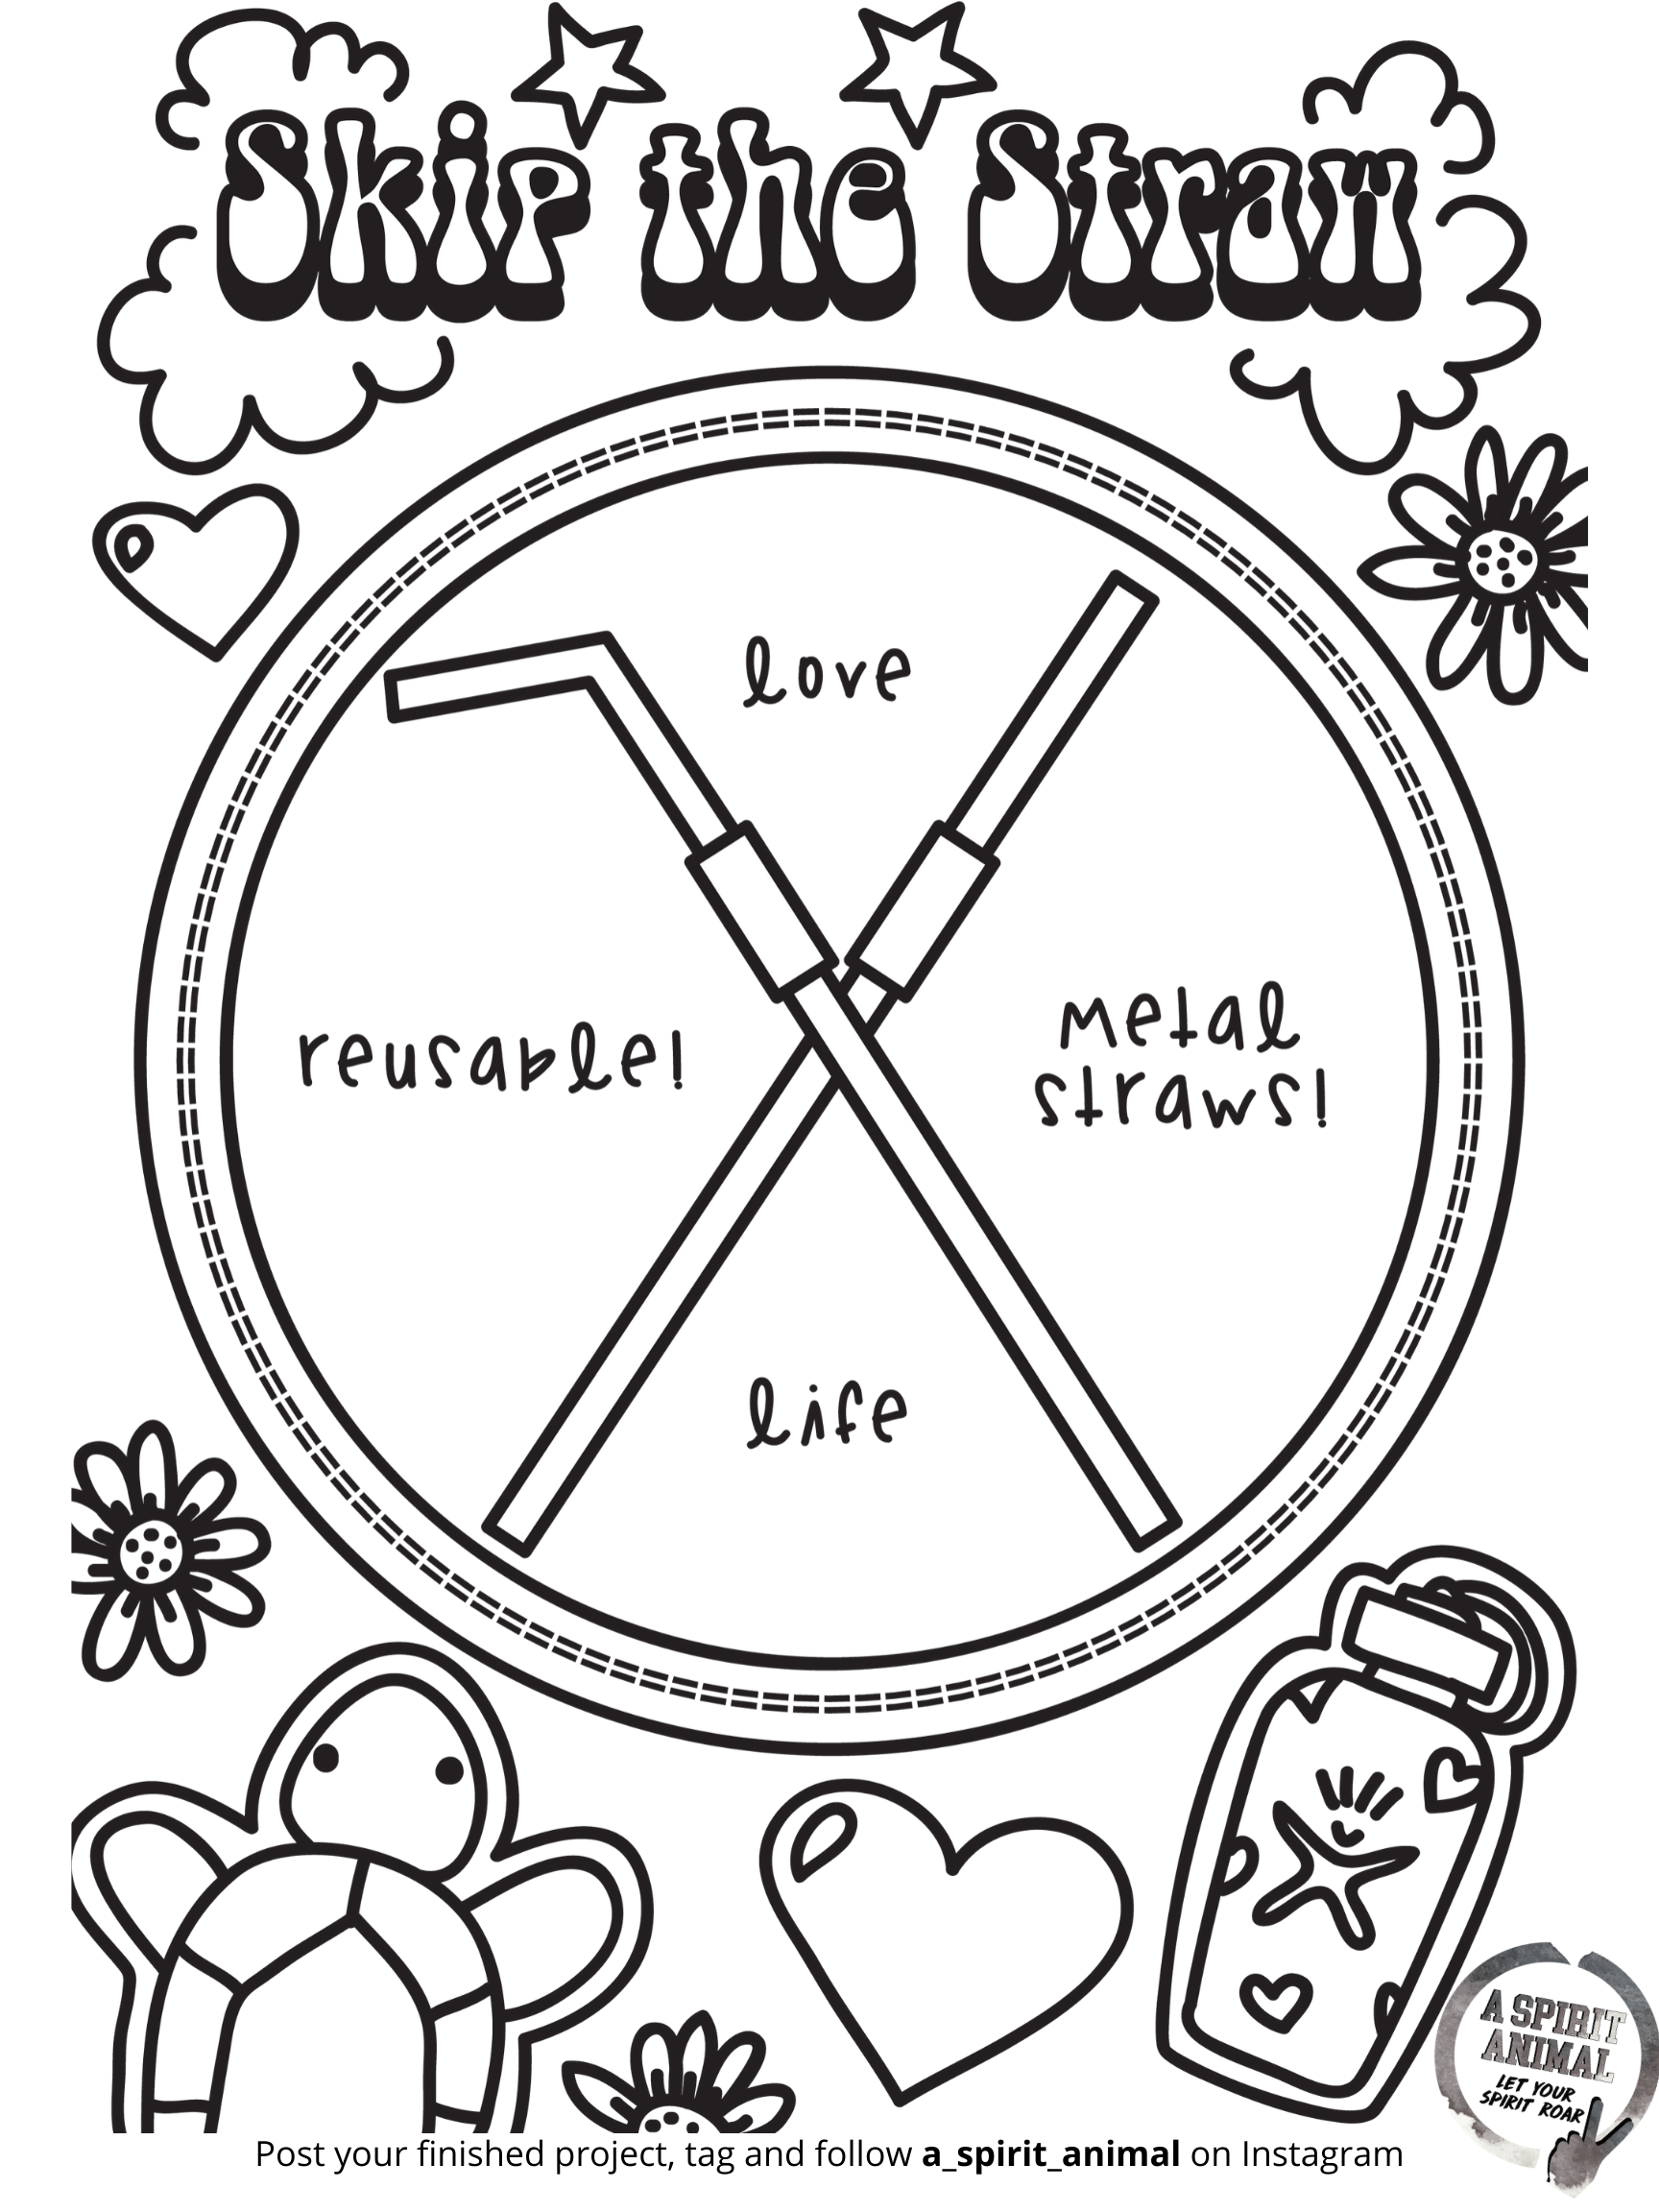 Save the straw coloring page from a spirit animal - an online boutique curated for girls and their moms featuring the hottest clothes and accessories.